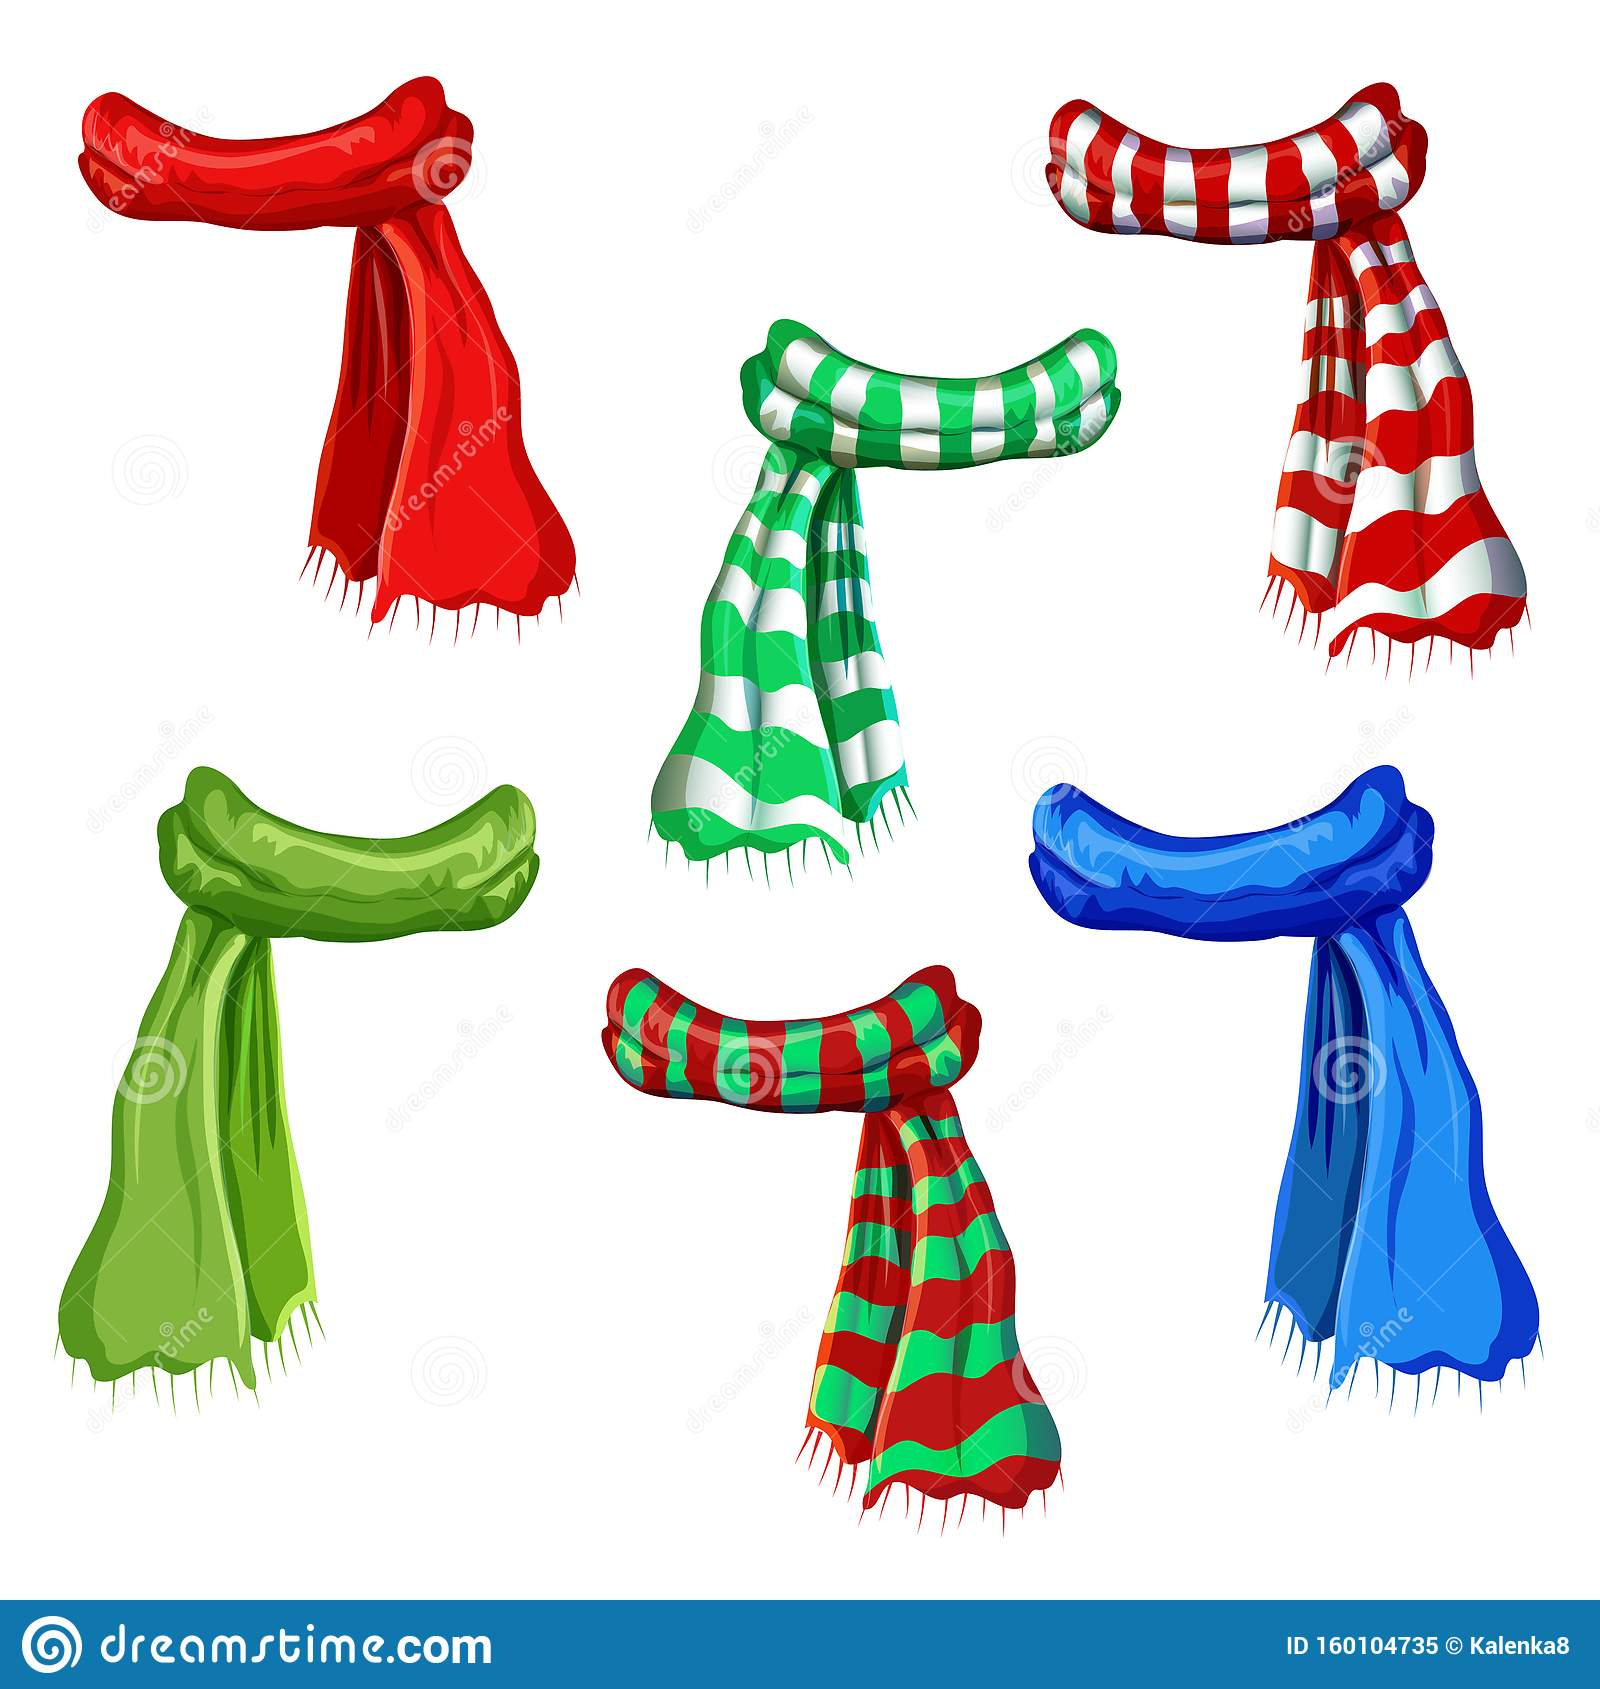 Winter Scarf Collection Isolated On White Background Illustration Of Red Green Striped Scarfs Wool Muffler Icon Set Winter Stock Illustration Illustration Of Christmas Drawing 160104735